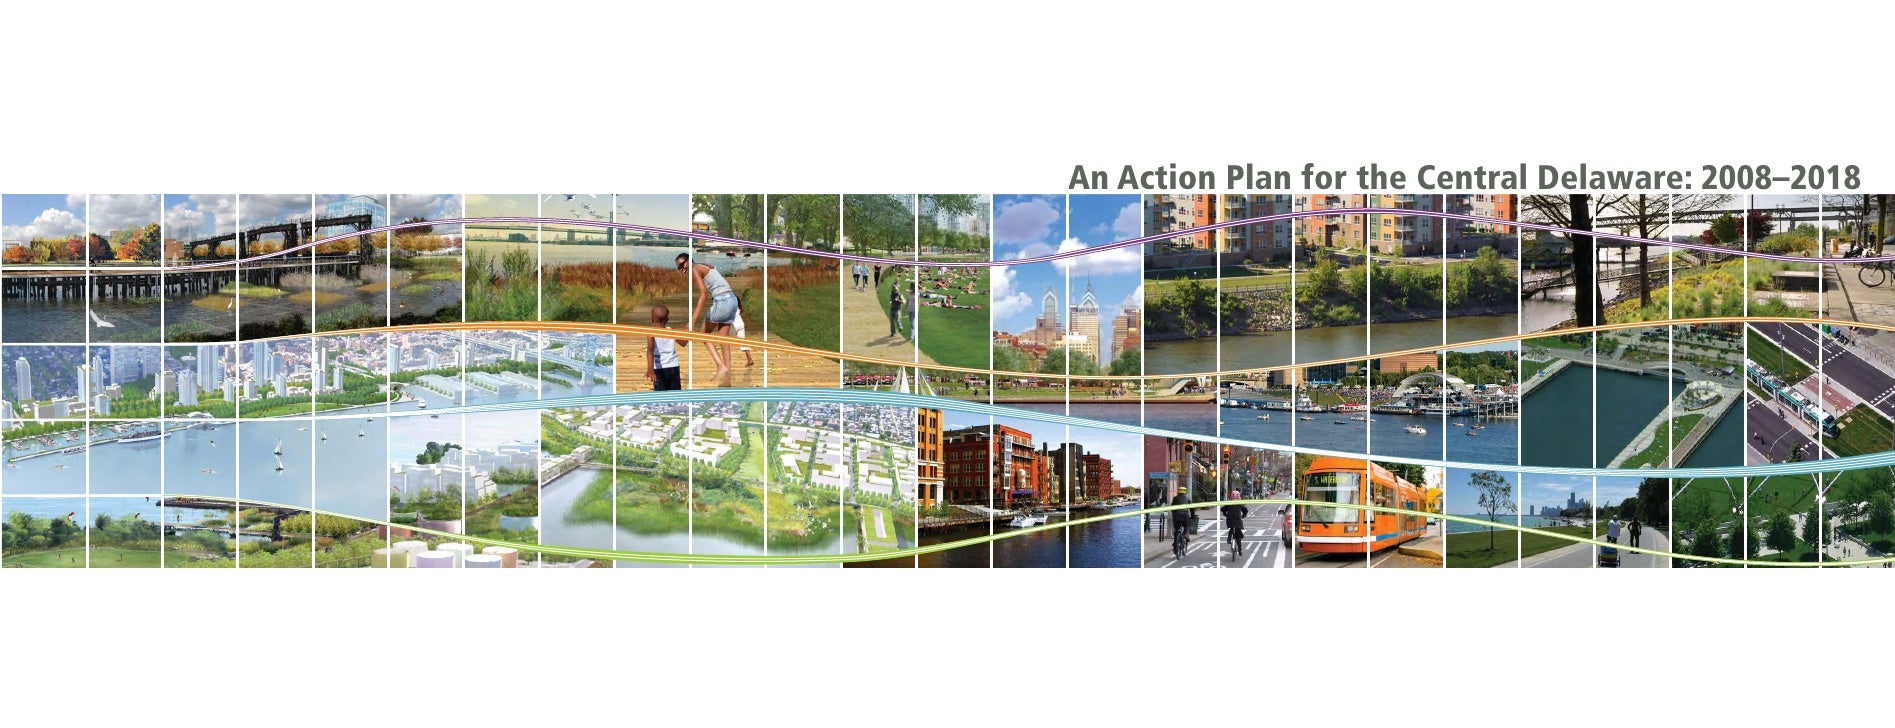 Action Plan for the Central Delaware